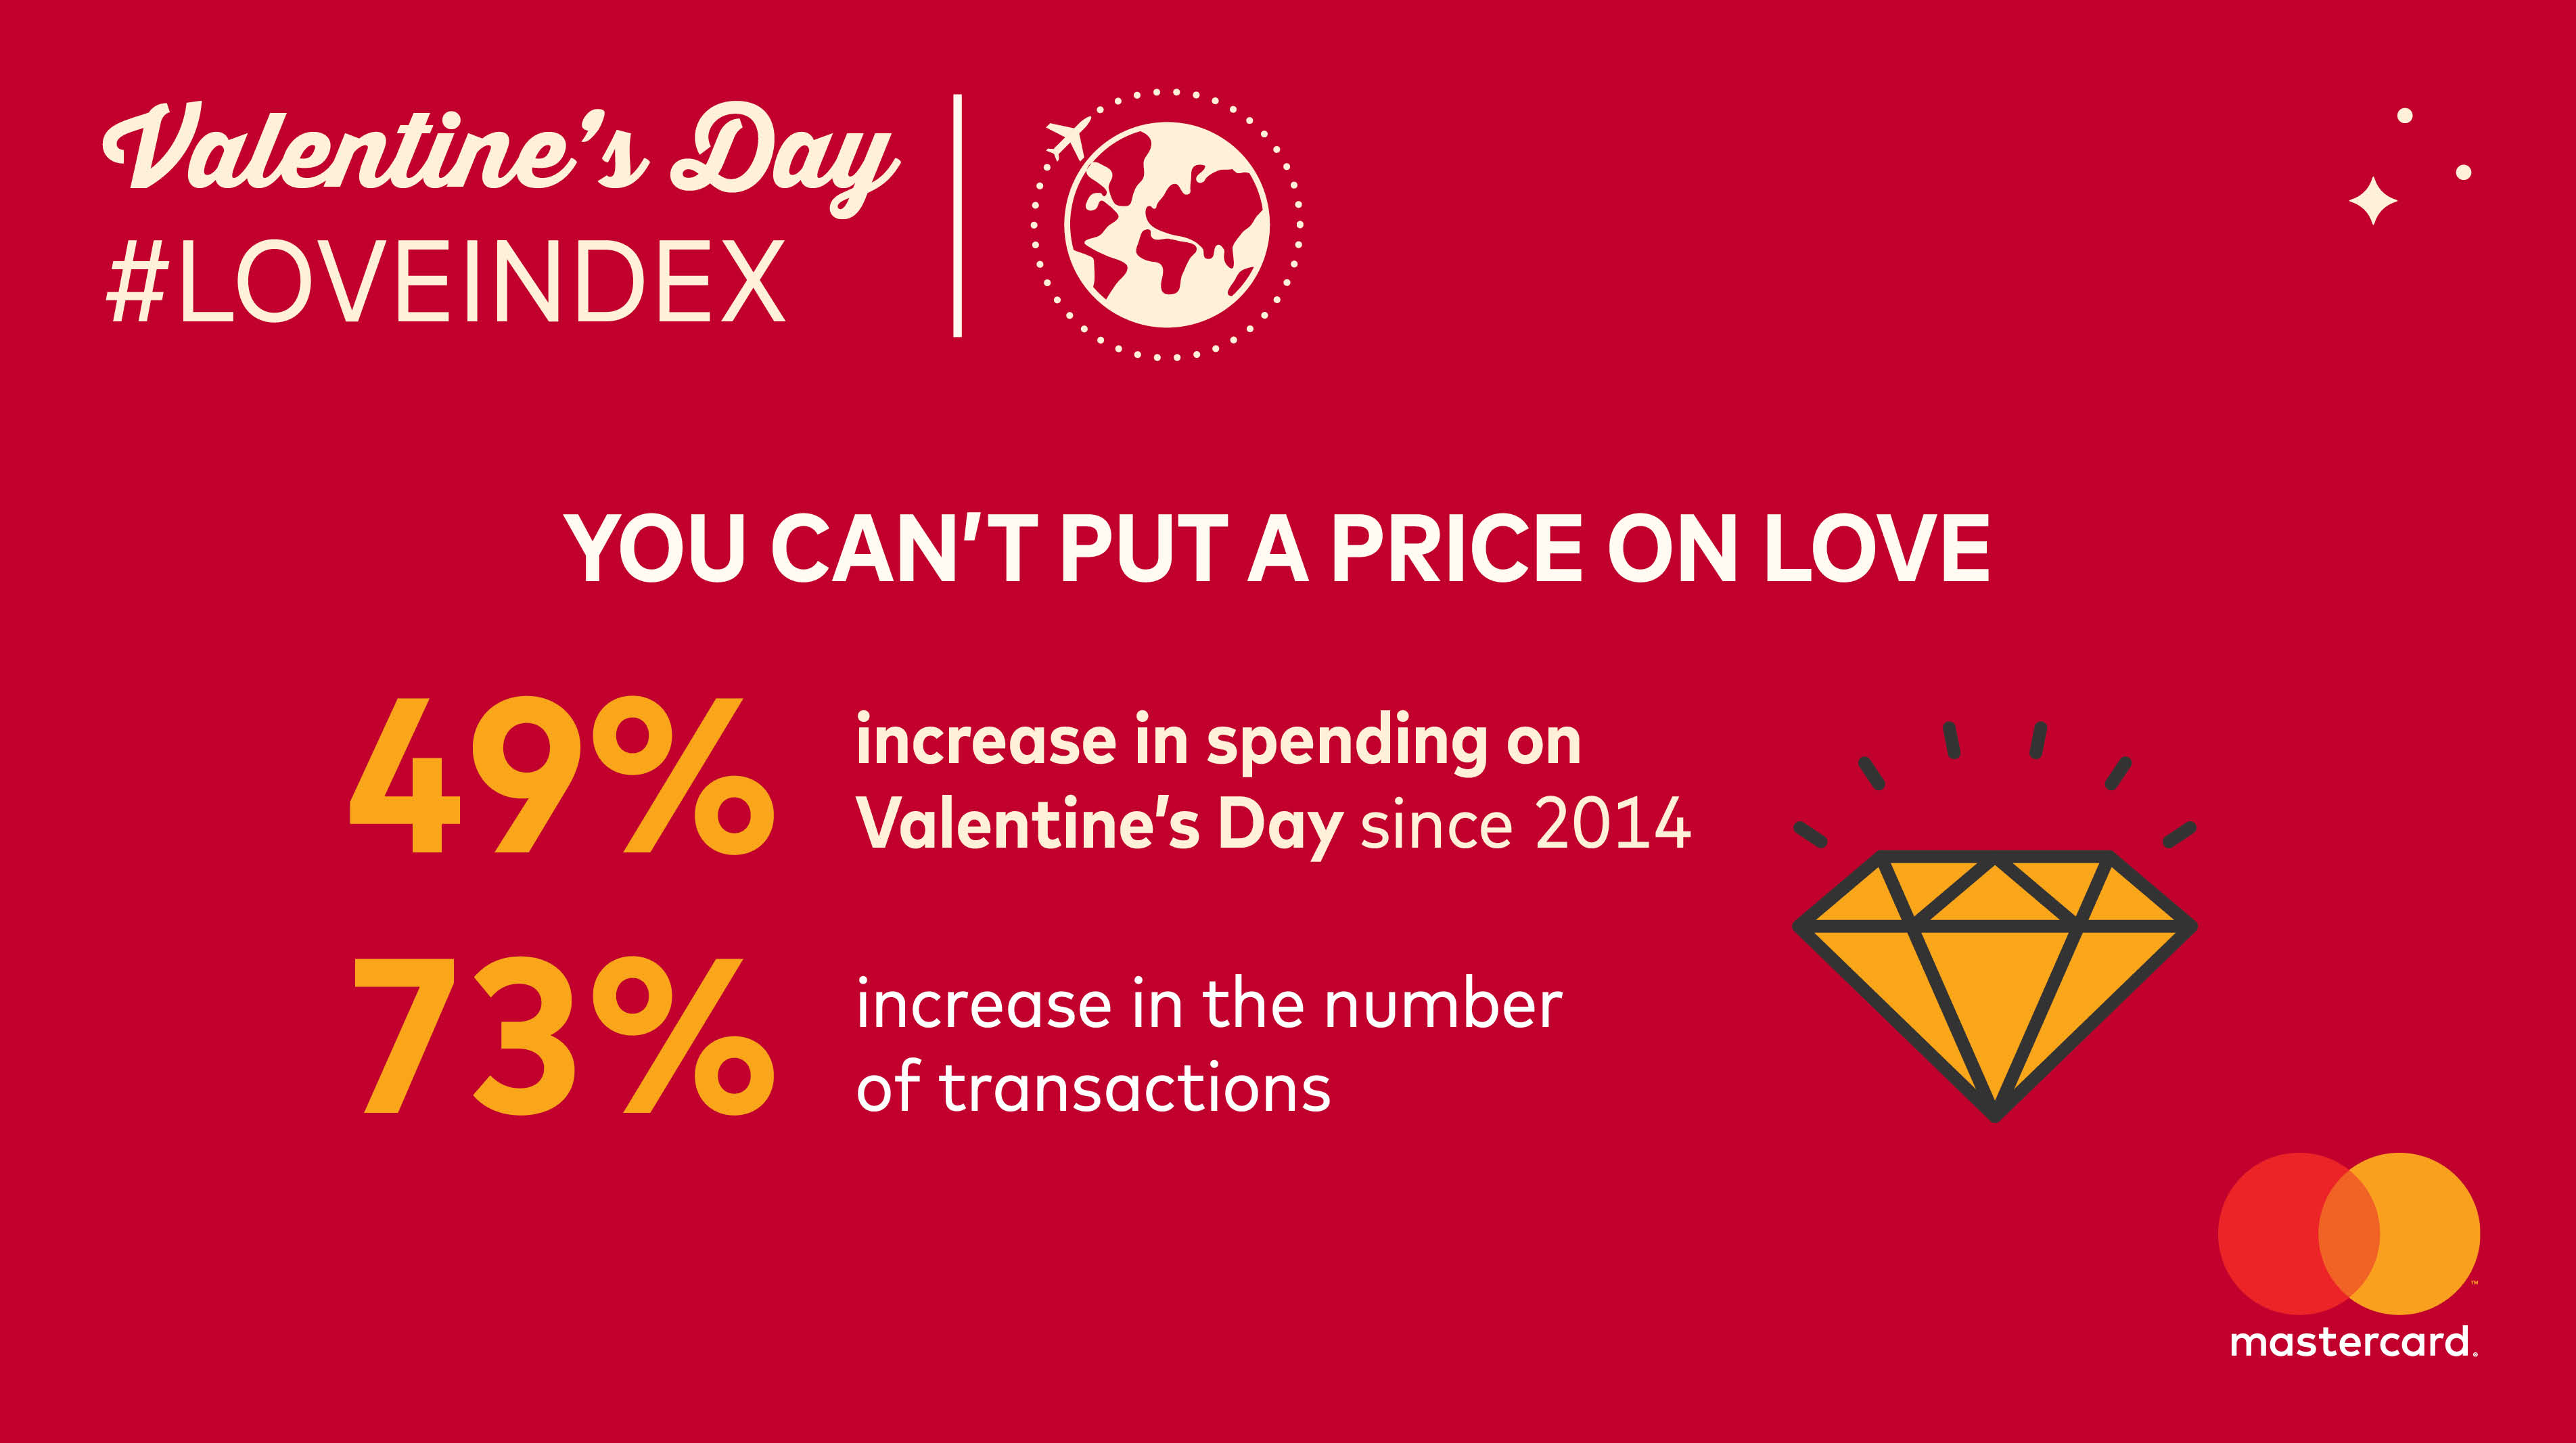 You Can't Put a Price on Love….Especially When it Comes to Valentine's Day